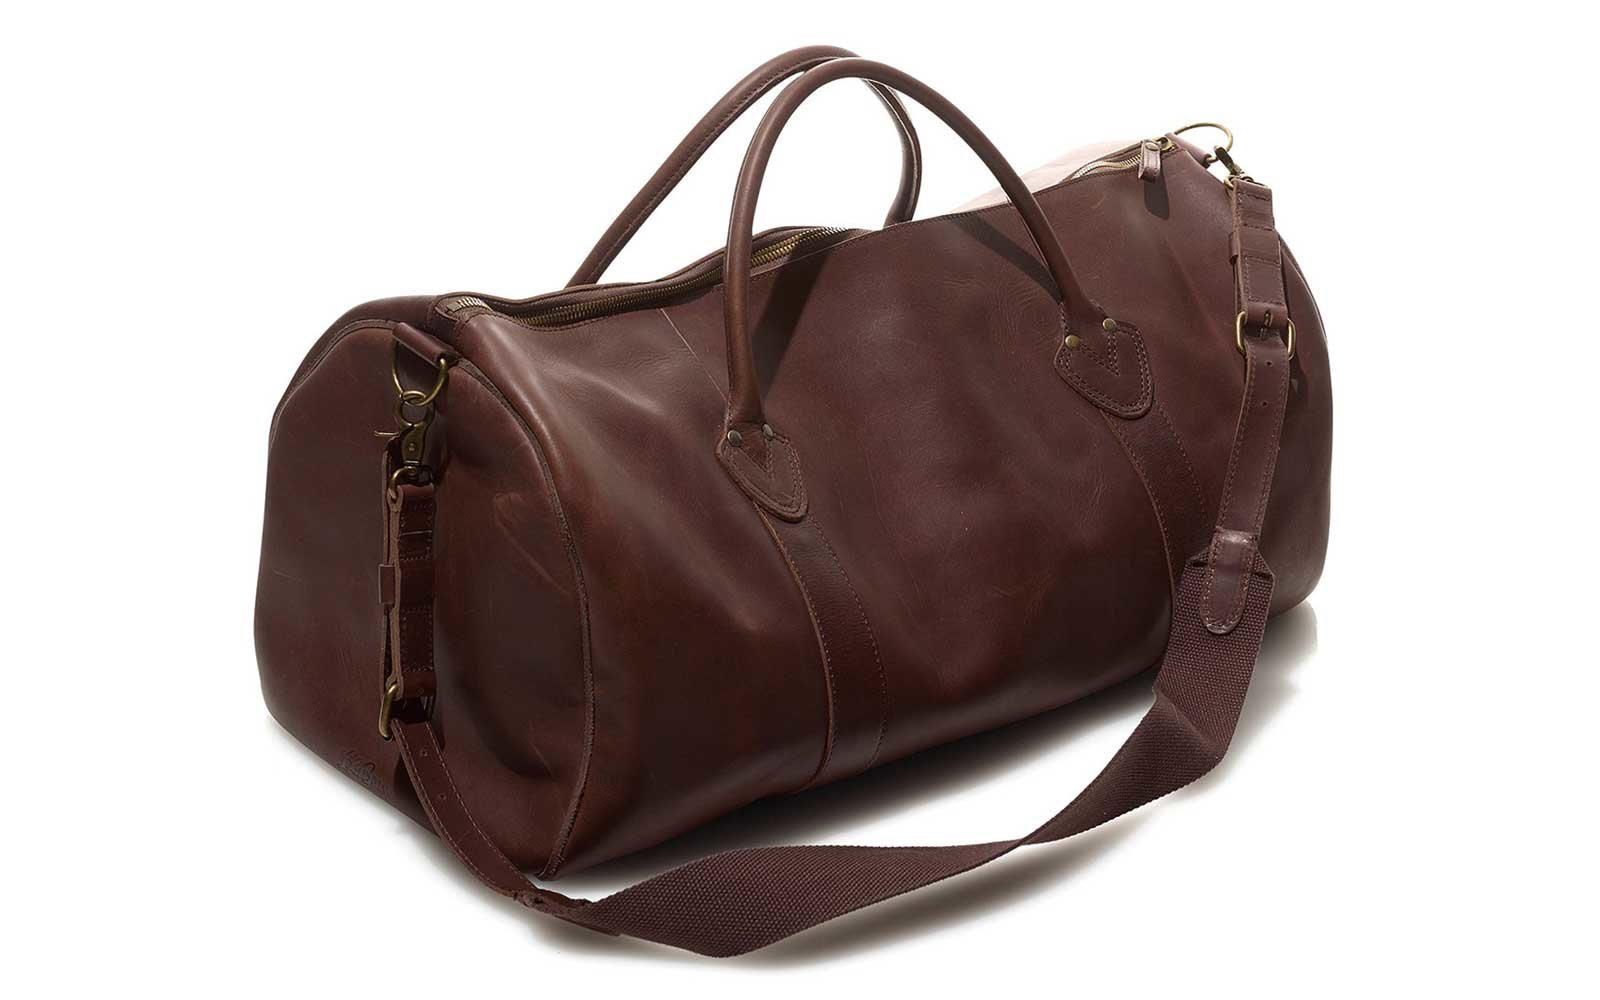 Ll Bean Duffel Bag For Travel